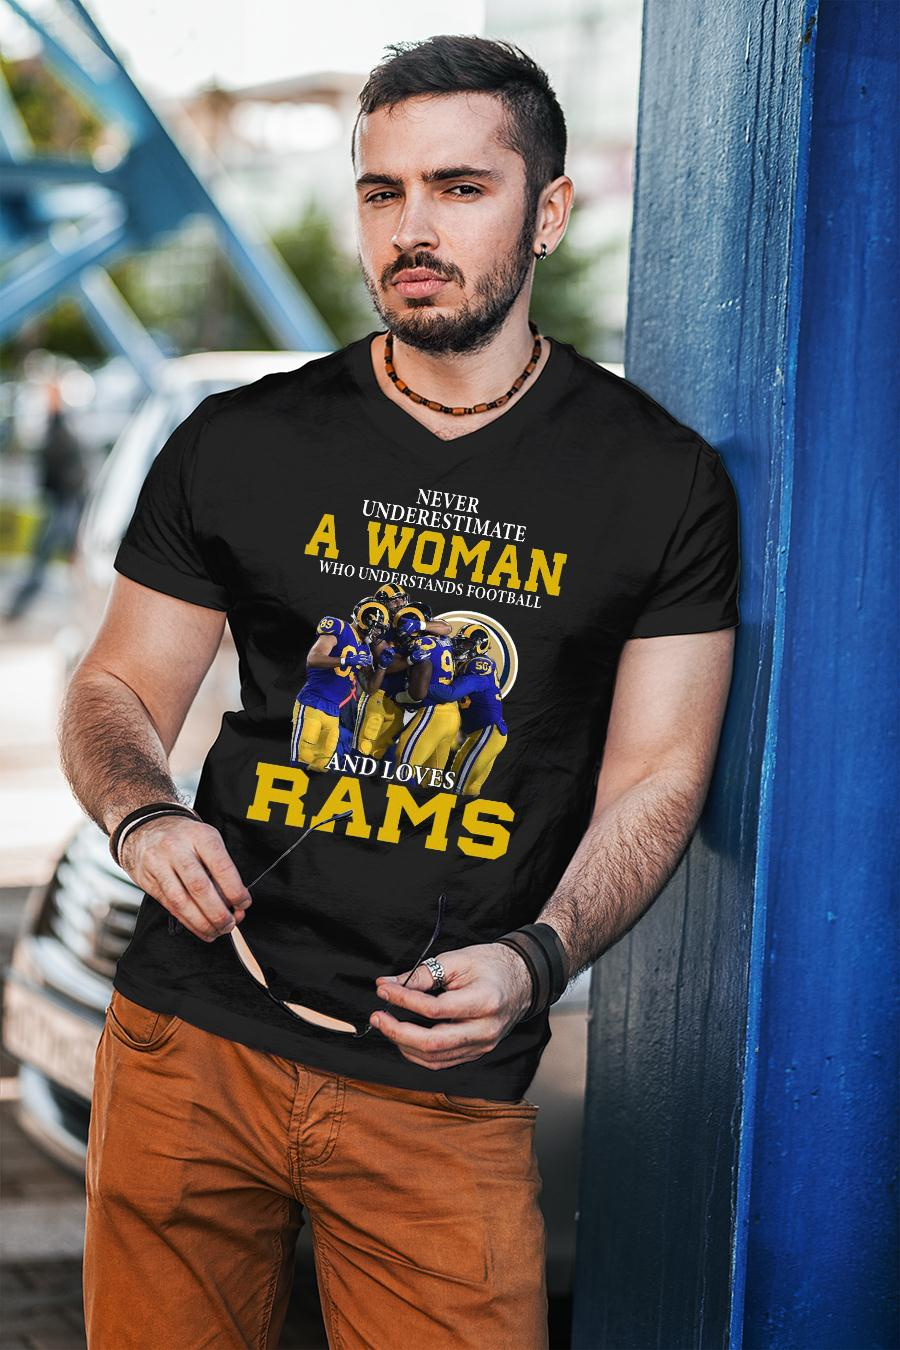 Never Underestimate A Woman Who Understands Football Loves Rams shirt unisex